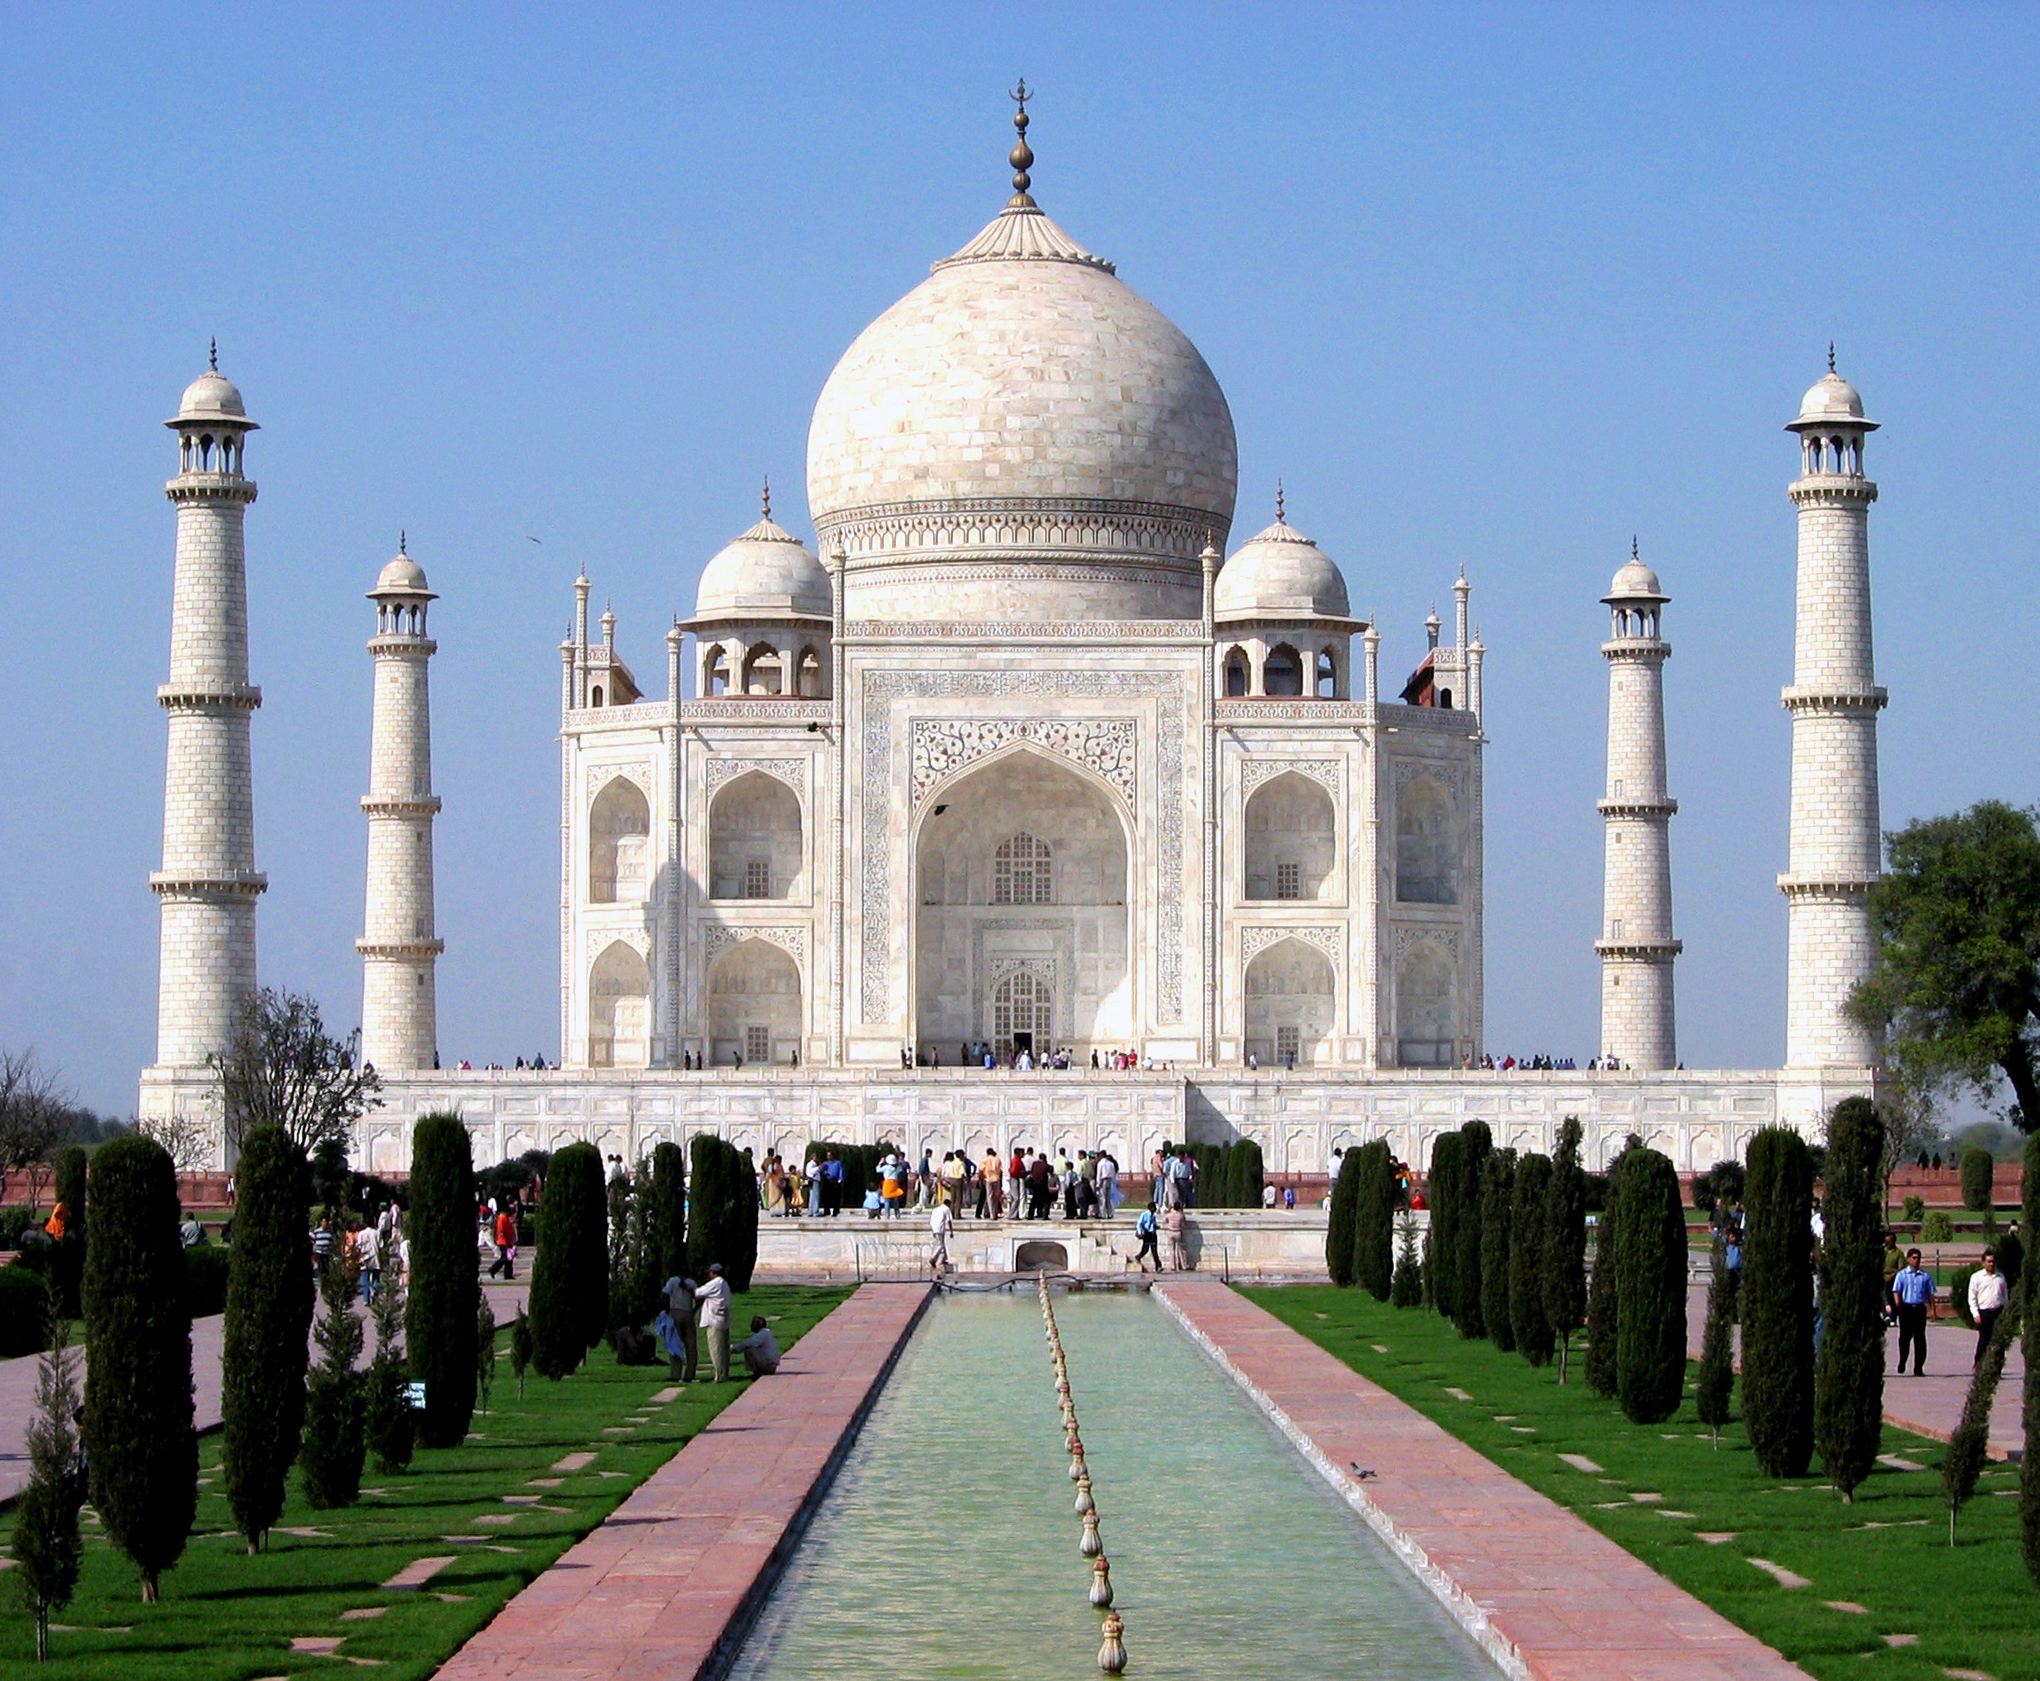 Front Image view of Taj Mahal